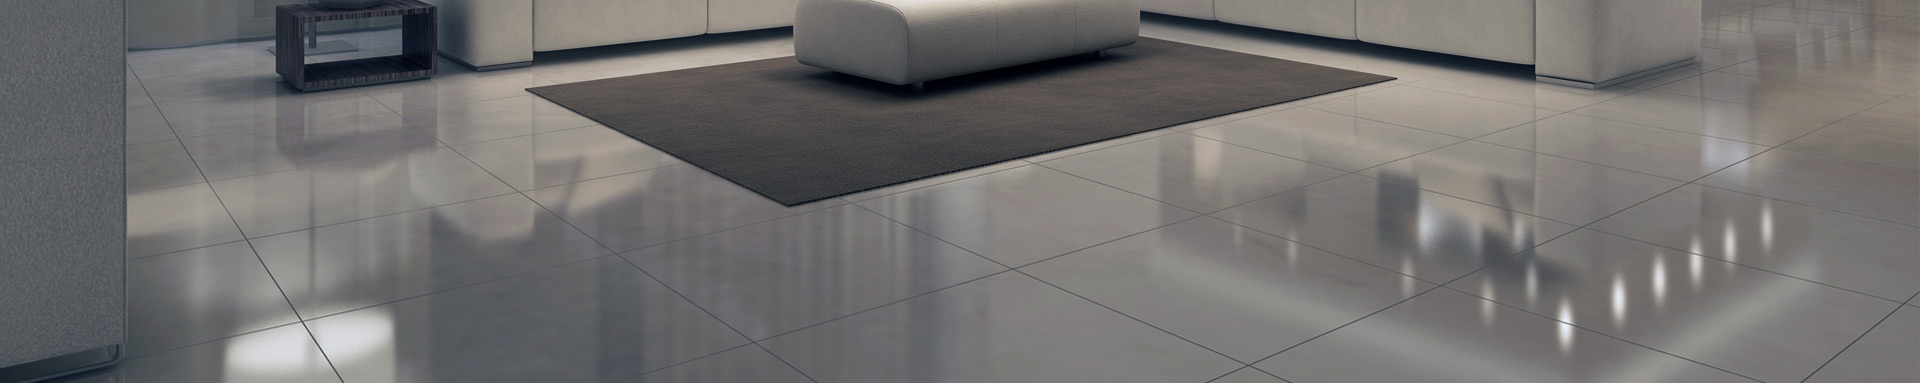 Floor Cleaning and Maintenance